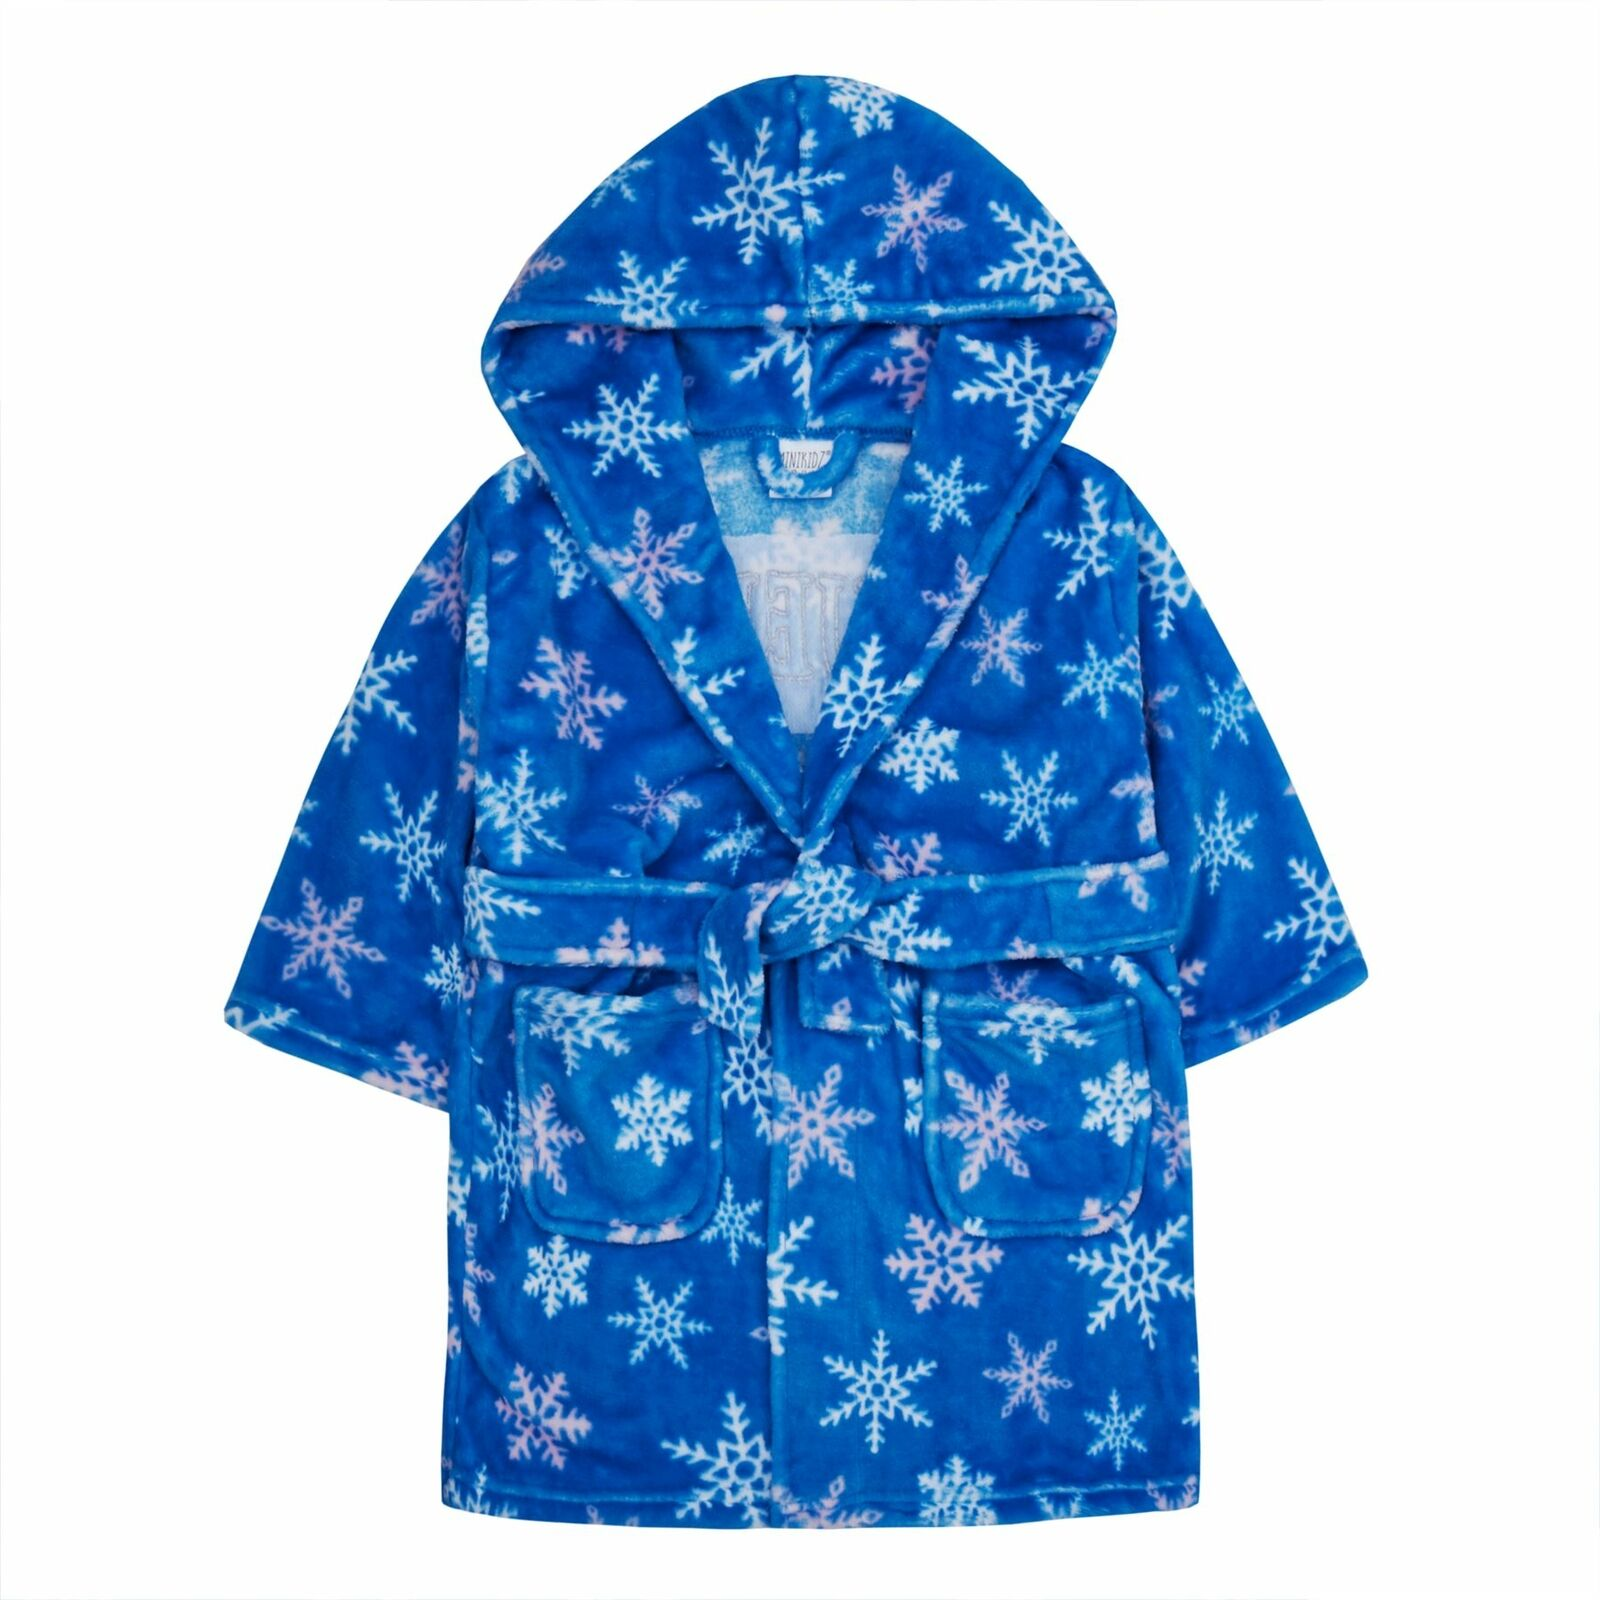 Girls Snow Queen Bathrobe, Hooded Fleece Dressing Gown, Snowflake Nightwear Soft Plush Robe for Kids